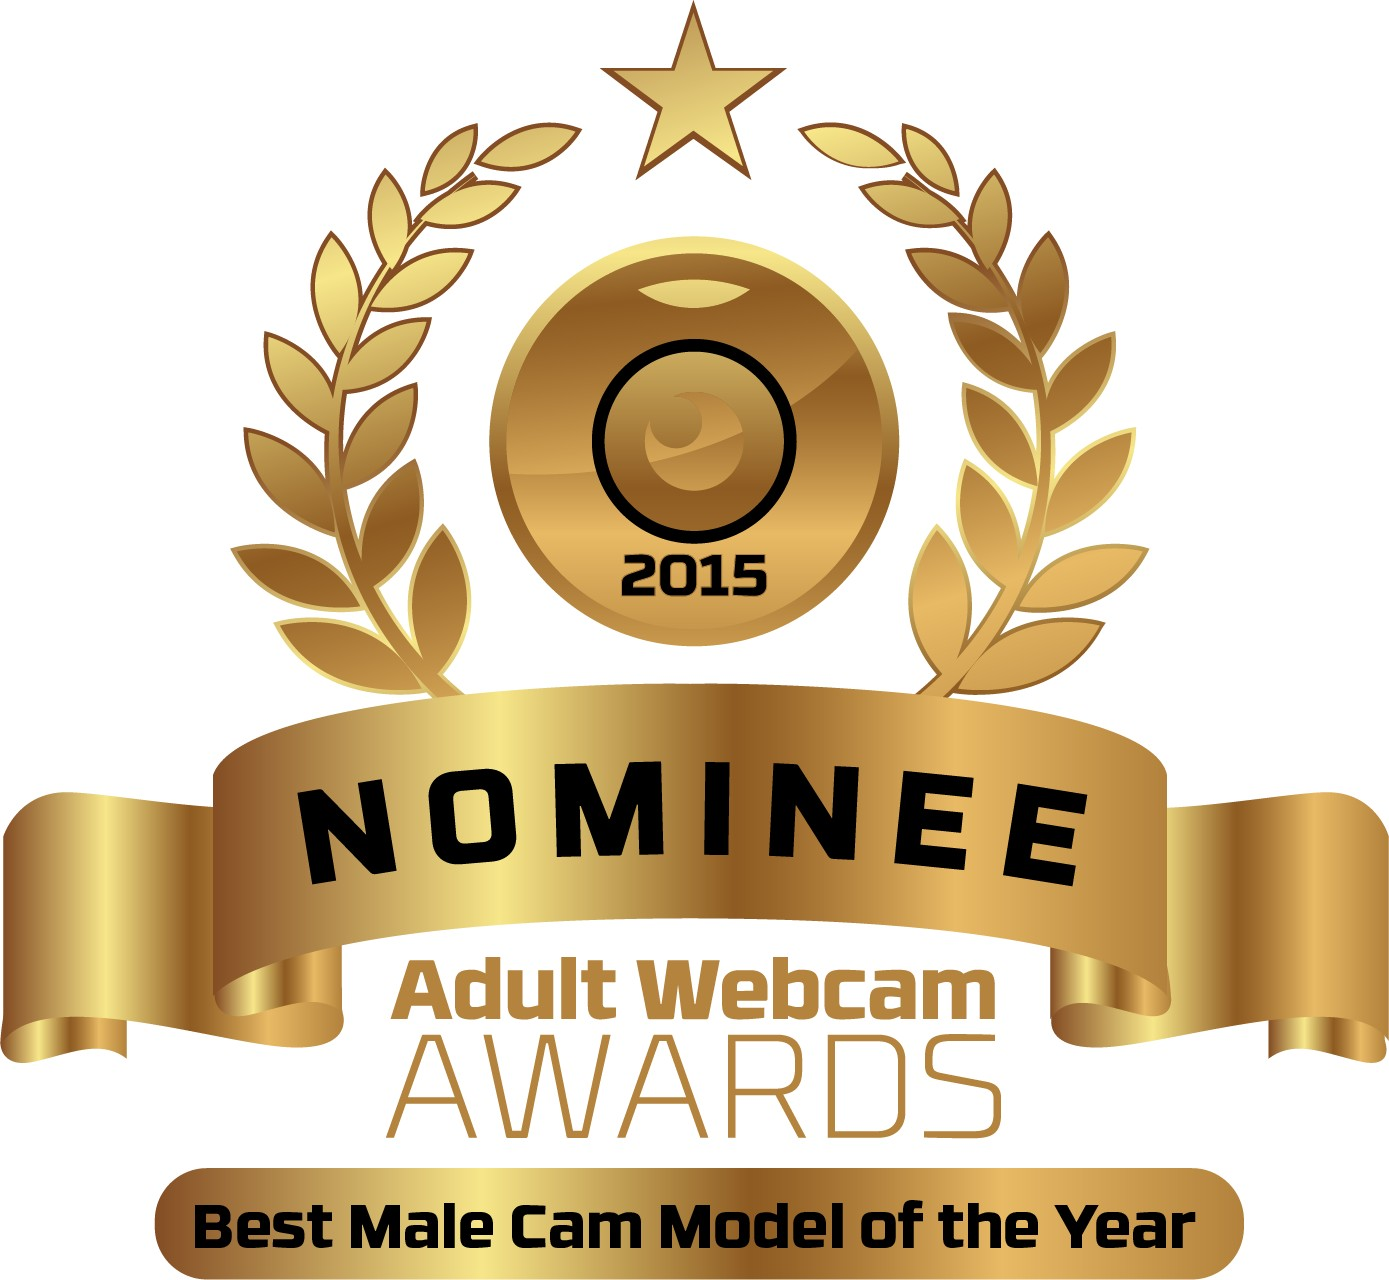 Best Male Cam Model Nominee